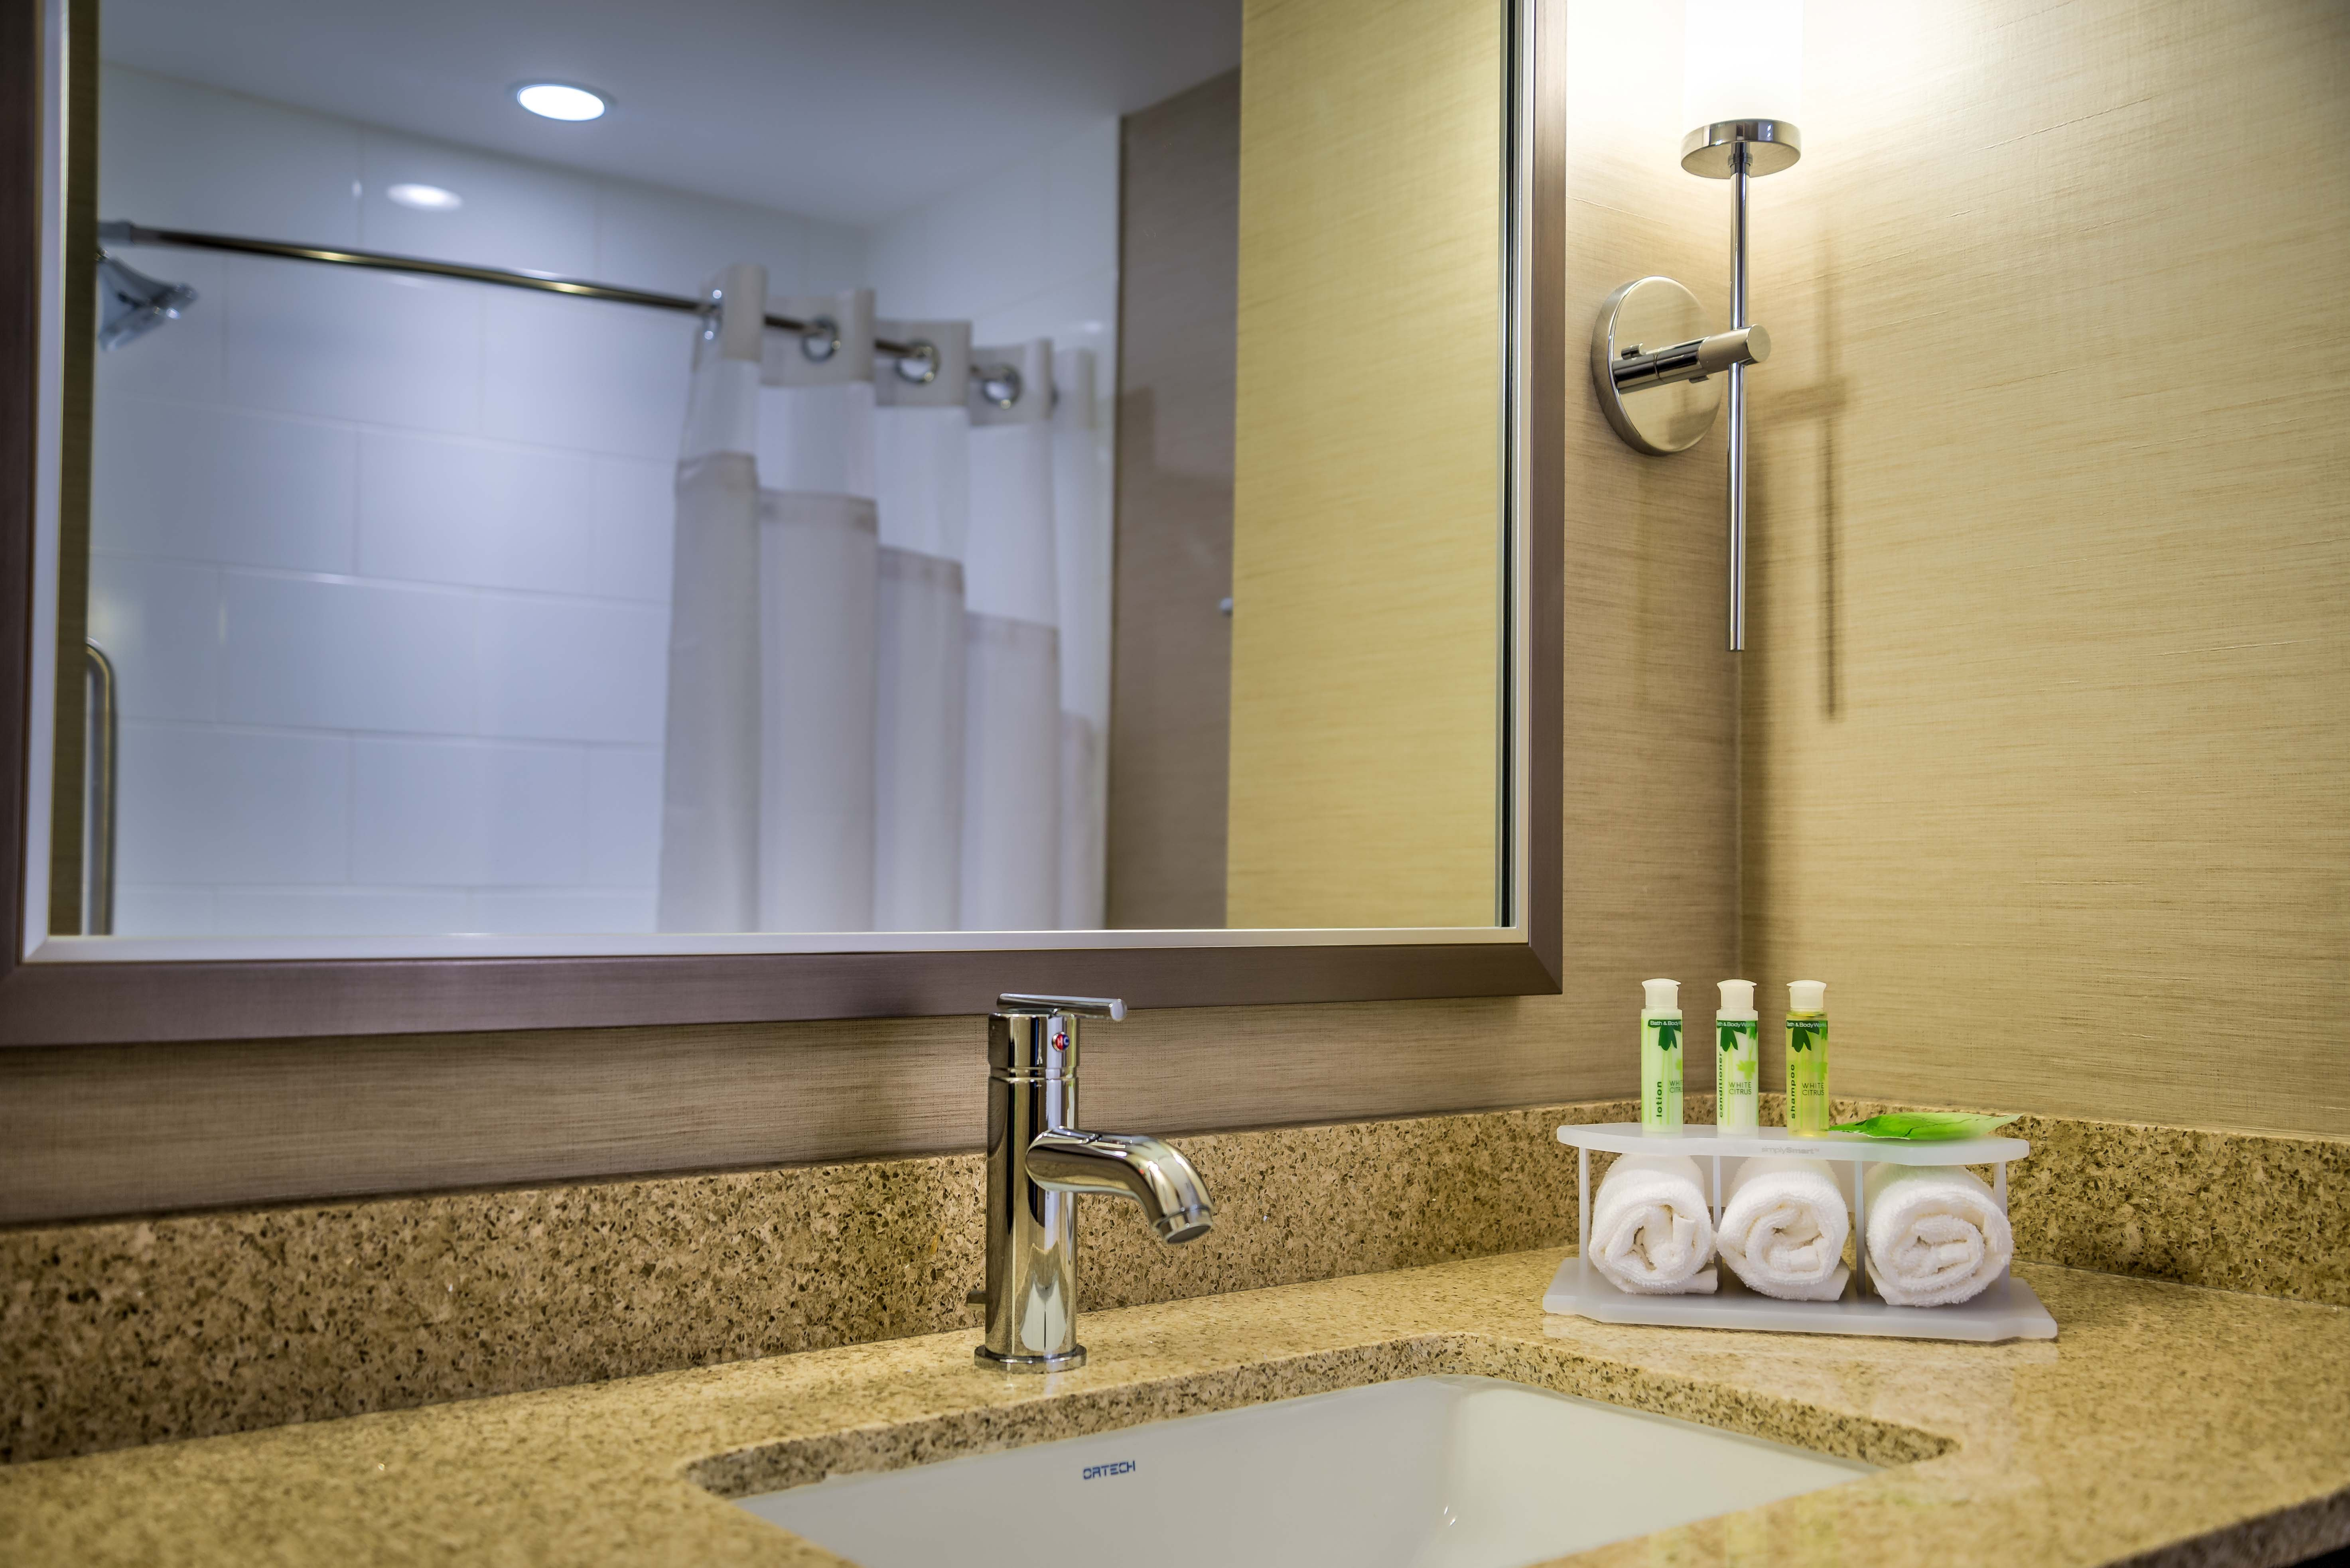 Holiday Inn Express and Suites Spruce Grove Stony, Division No. 11